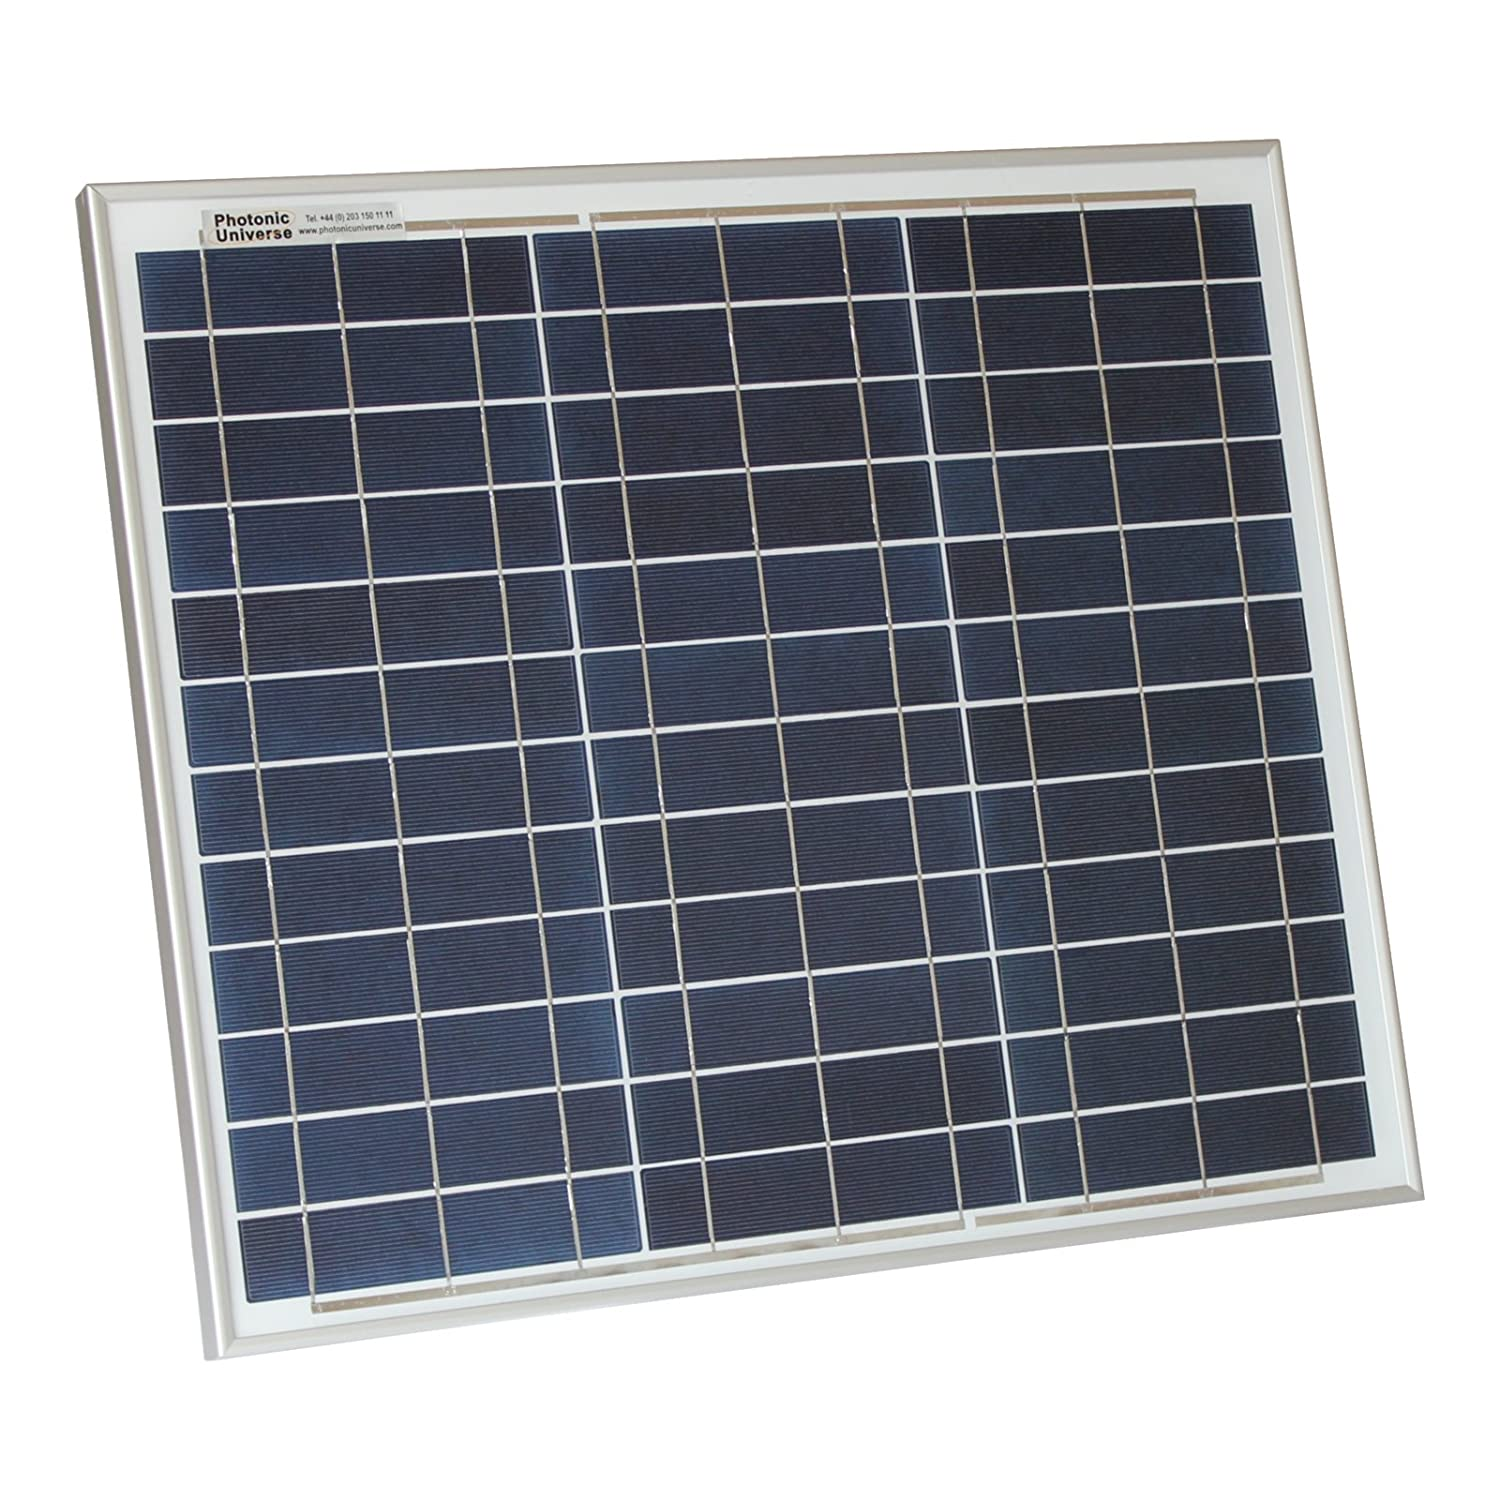 30W Photonic Universe solar panel with 5m cable for a camper, caravan, boat or any other 12V system (30 watt) BST-30P